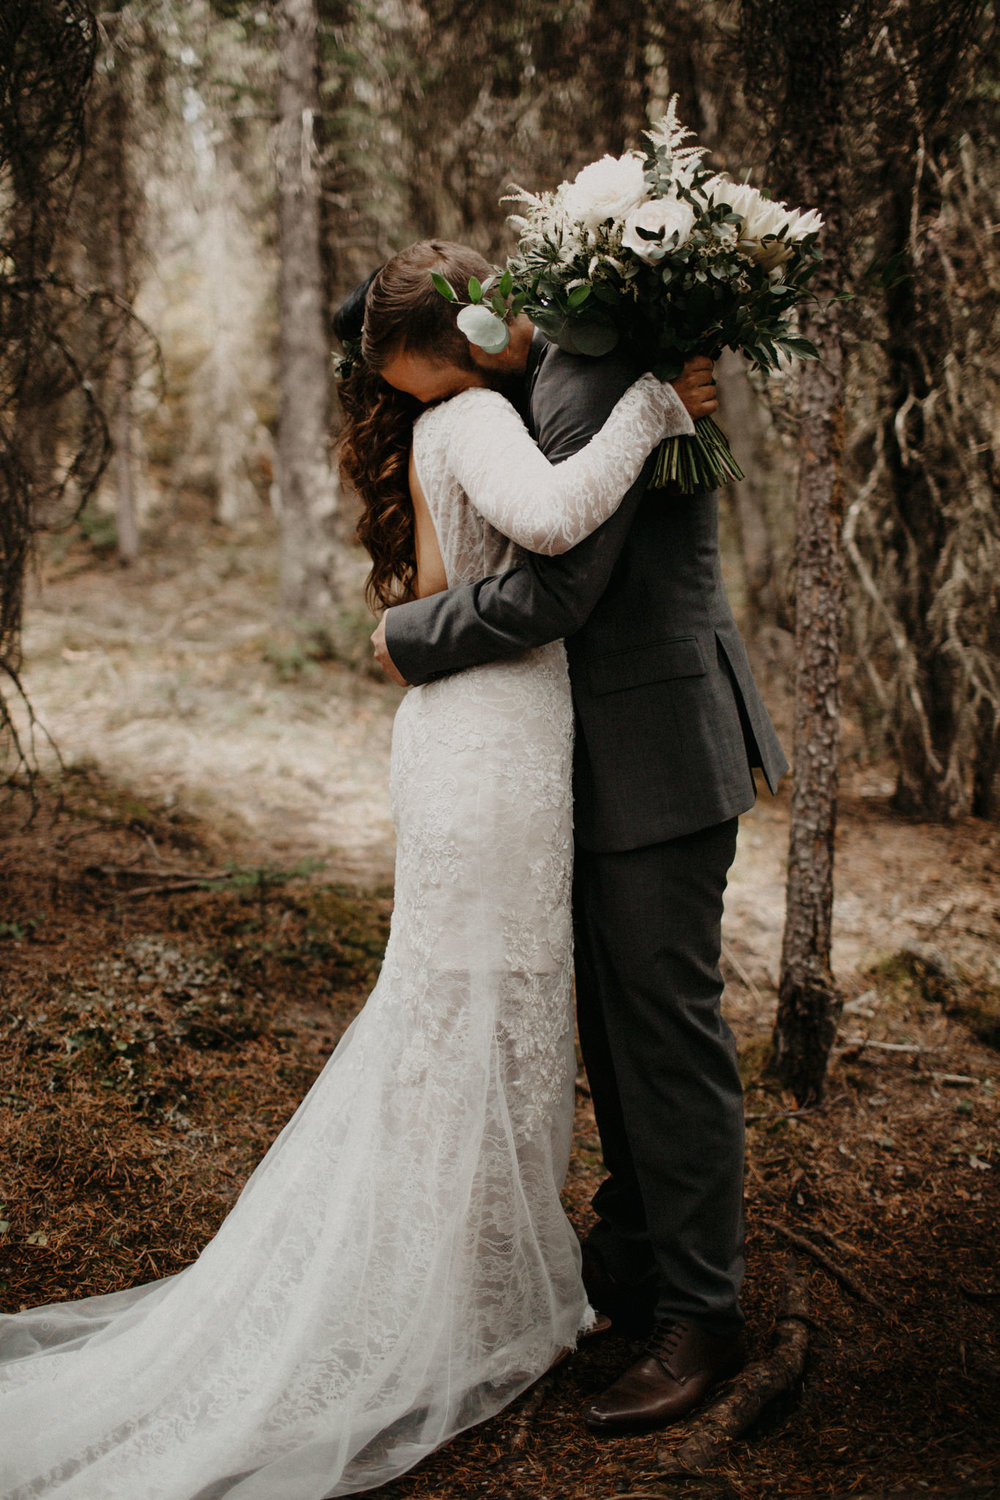 Moody, emotional first look in the forest | Banff Elopement Photographer Kandice Breinholt | Vera Wang lace wedding dress and Willow Flower Co neutral green and white bouquet and flower crown